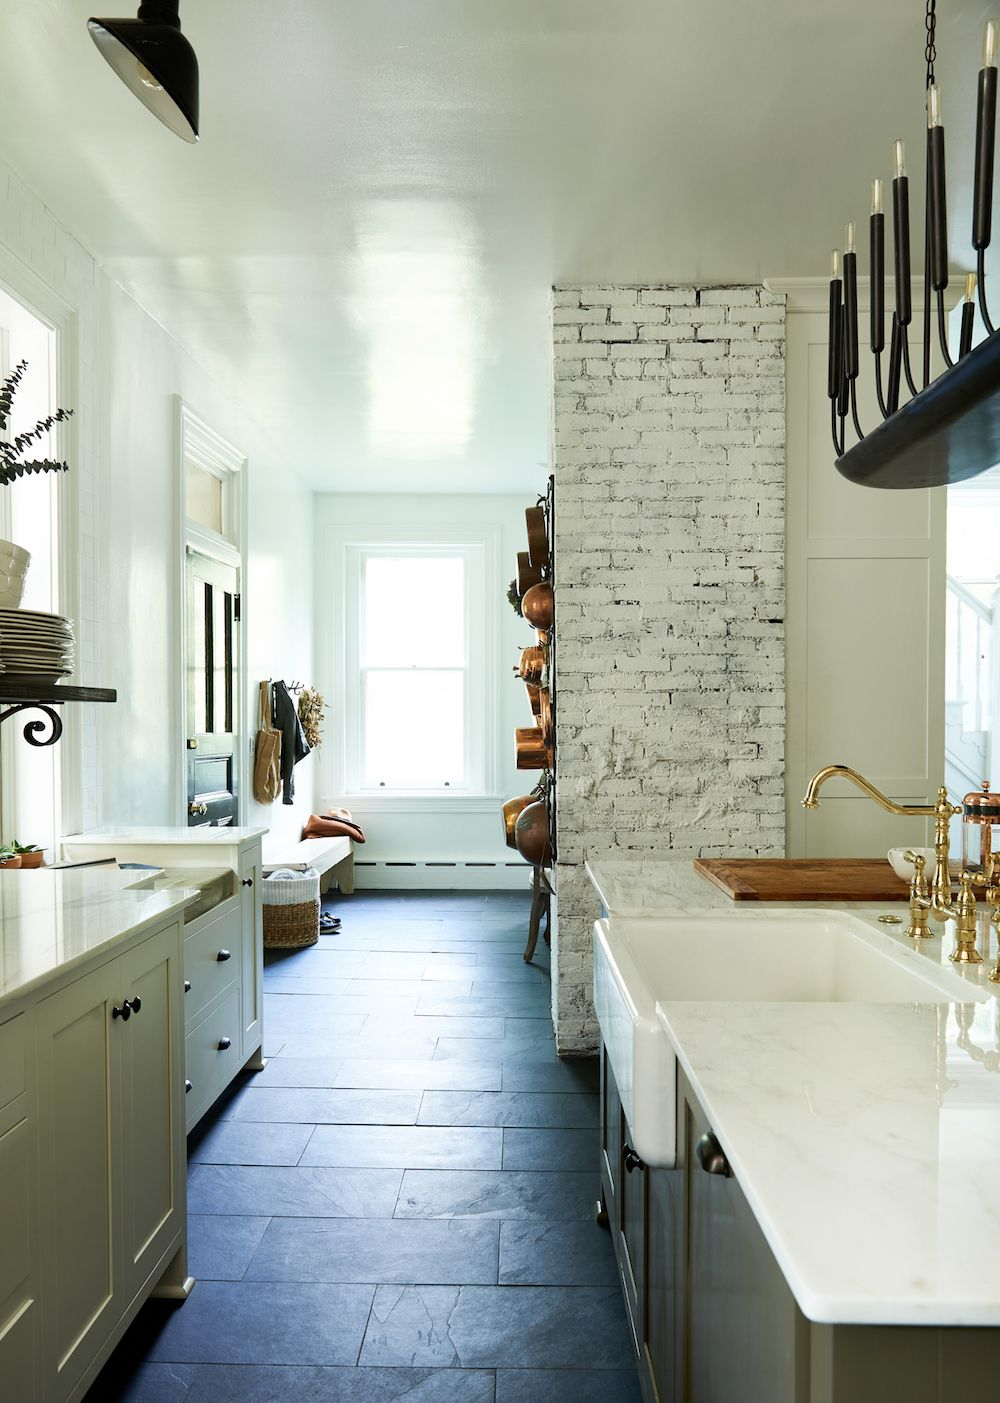 the donley project leanne ford kitchen concepts home on kitchen remodeling ideas and designs lowe s id=26898